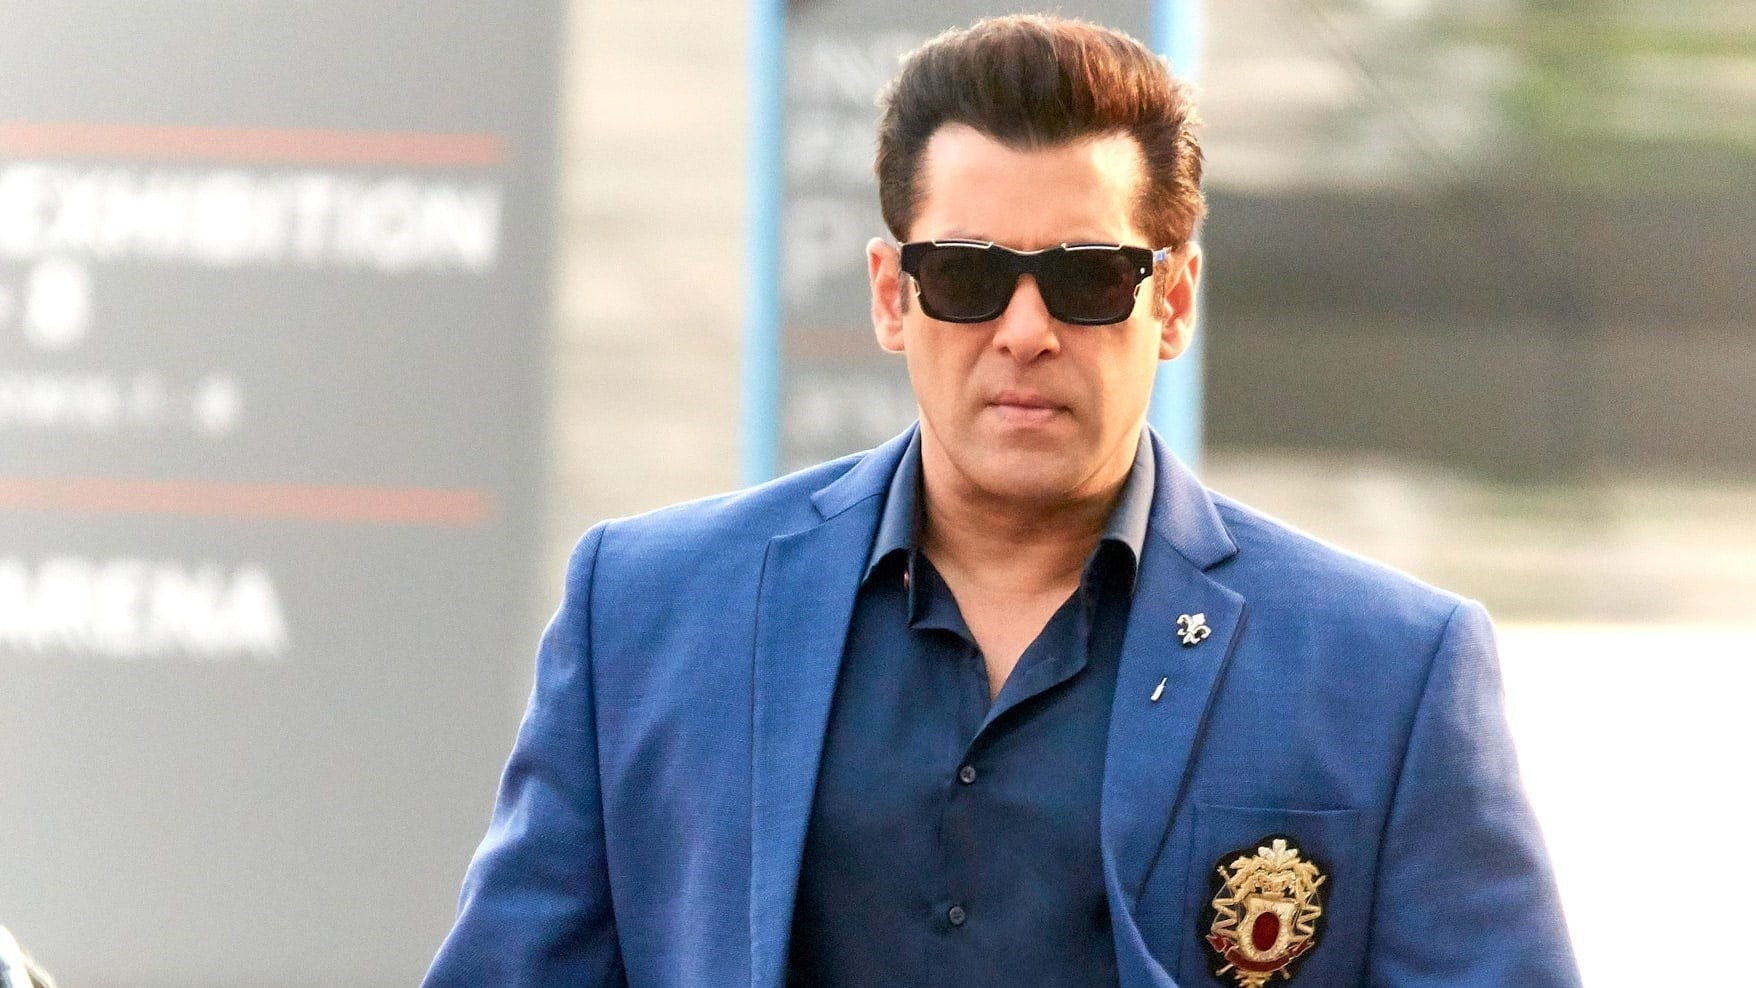 Race 3 2018 Hindi Full Movie Watch Online Free Download In Hd